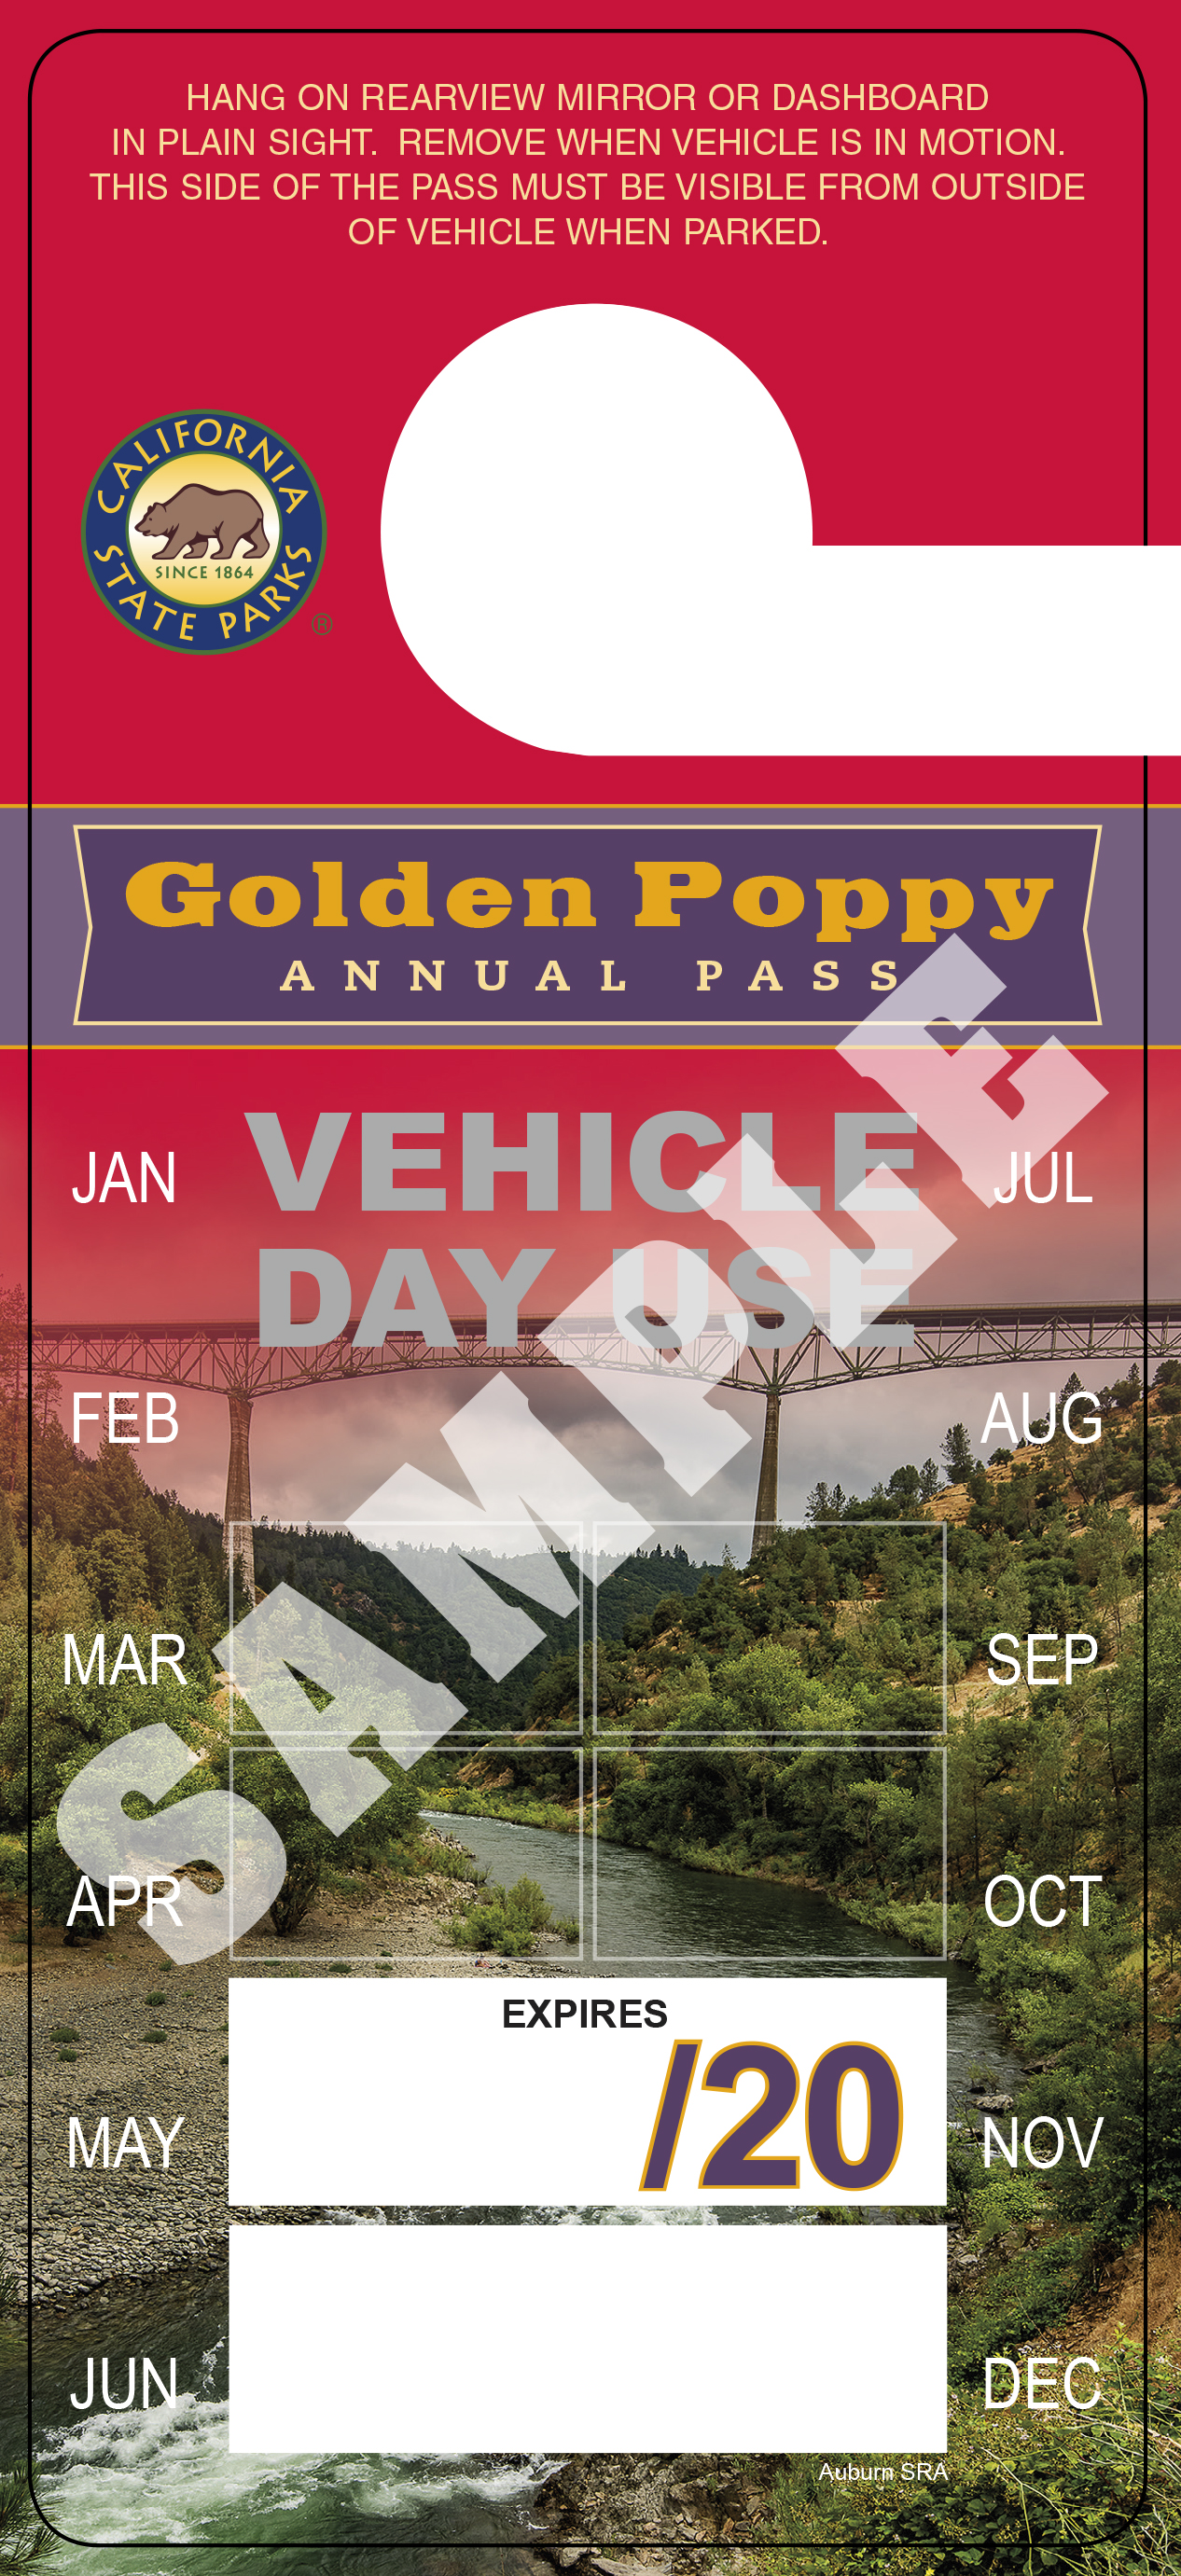 Annual Golden Poppy Pass image